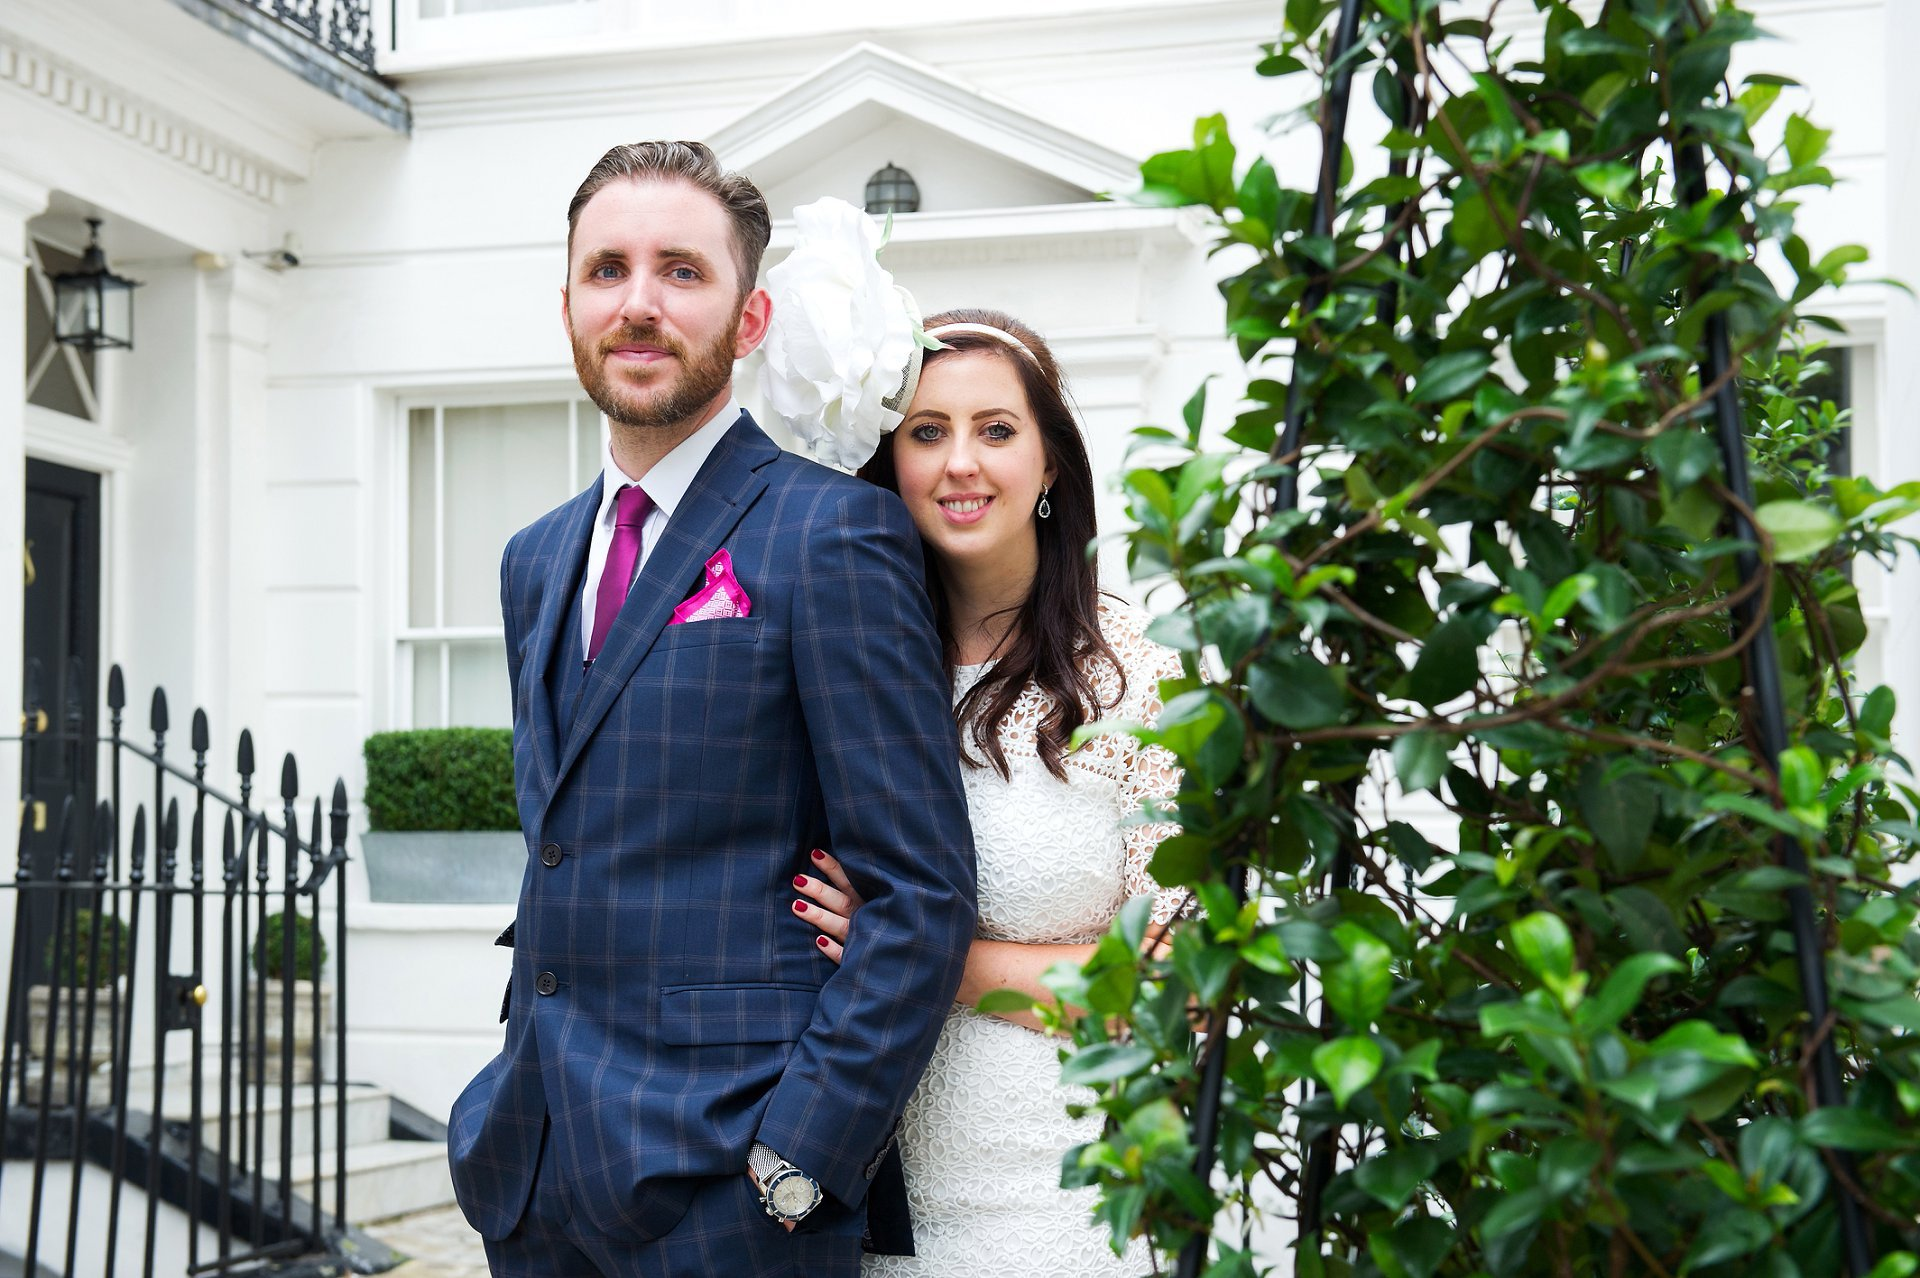 London wedding photographer Emma Duggan specialises in small one hour wedding coverage in Chelsea - here a bride and groom pose in front of a white stucco building